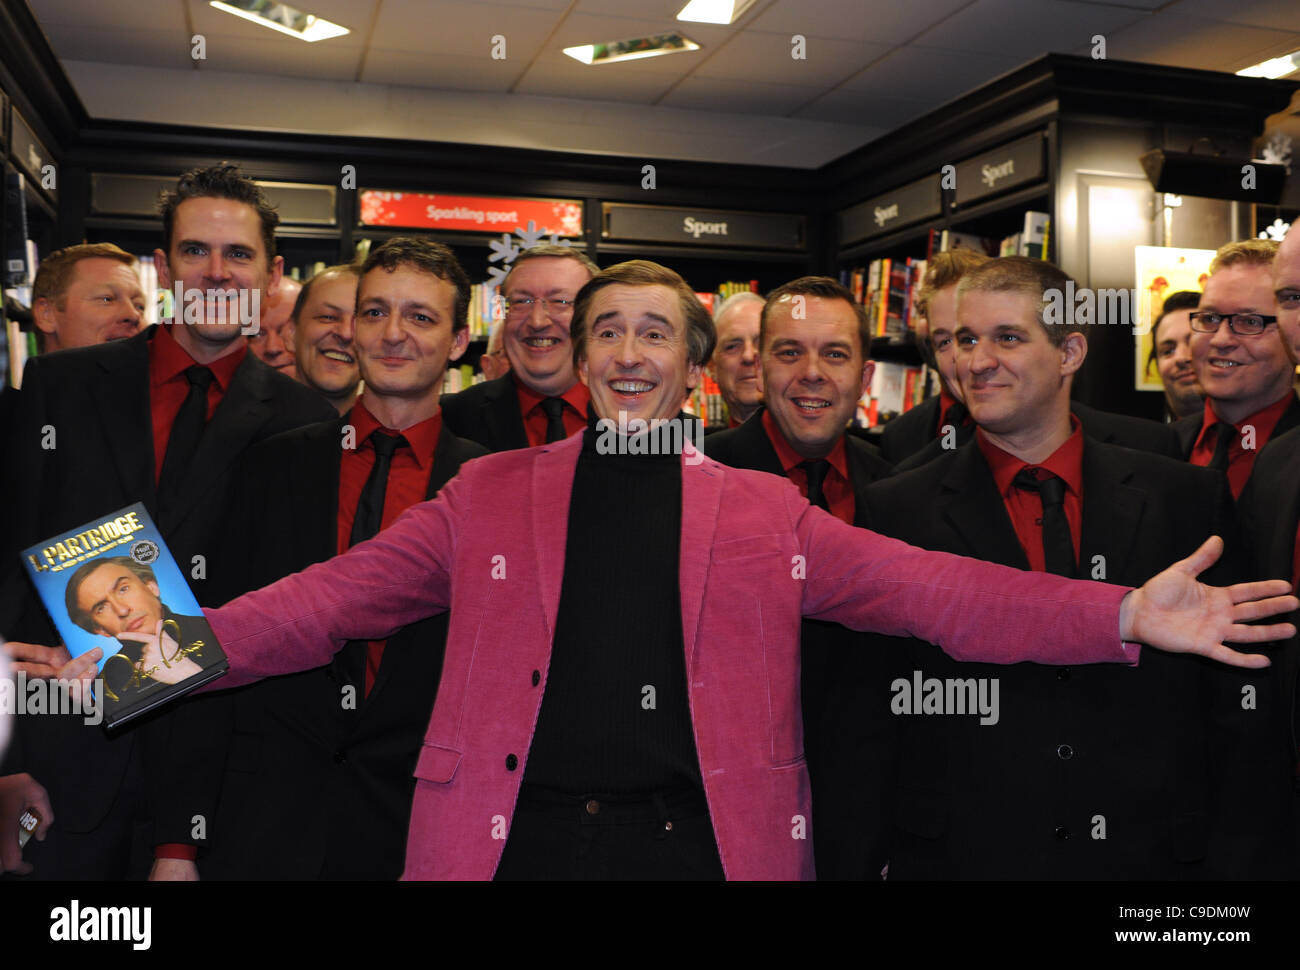 Alan Partridge famously played by actor Steve Coogan was at the Waterstone's bookshop in Brighton signing books - Stock Image